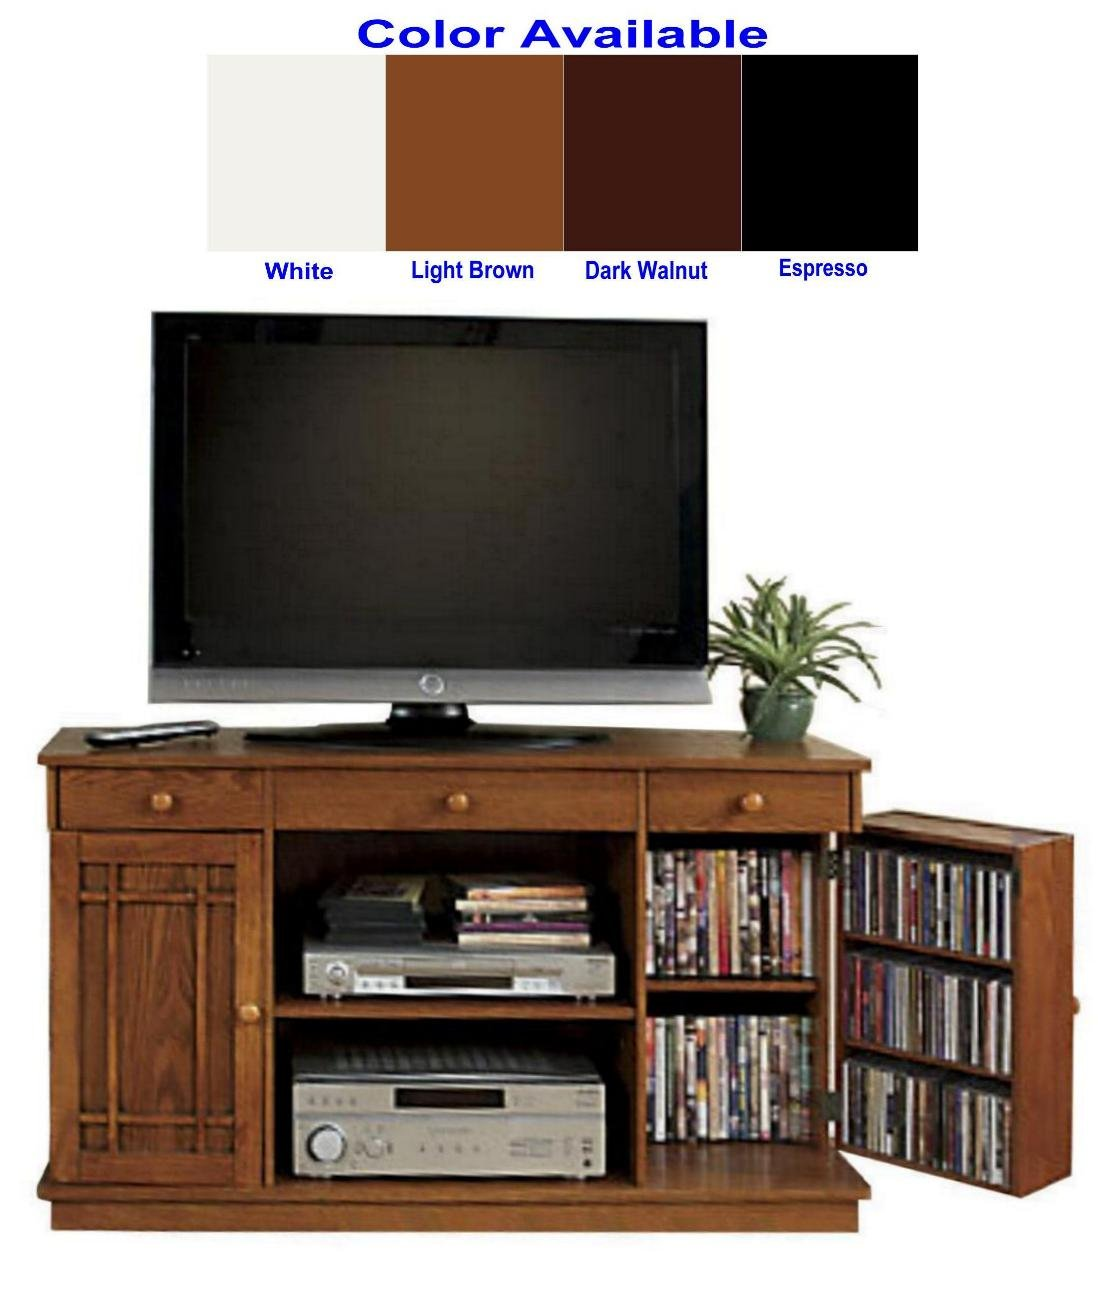 Wd 2980 Tv Stand W Media Storage Cabinet Product On Alibaba